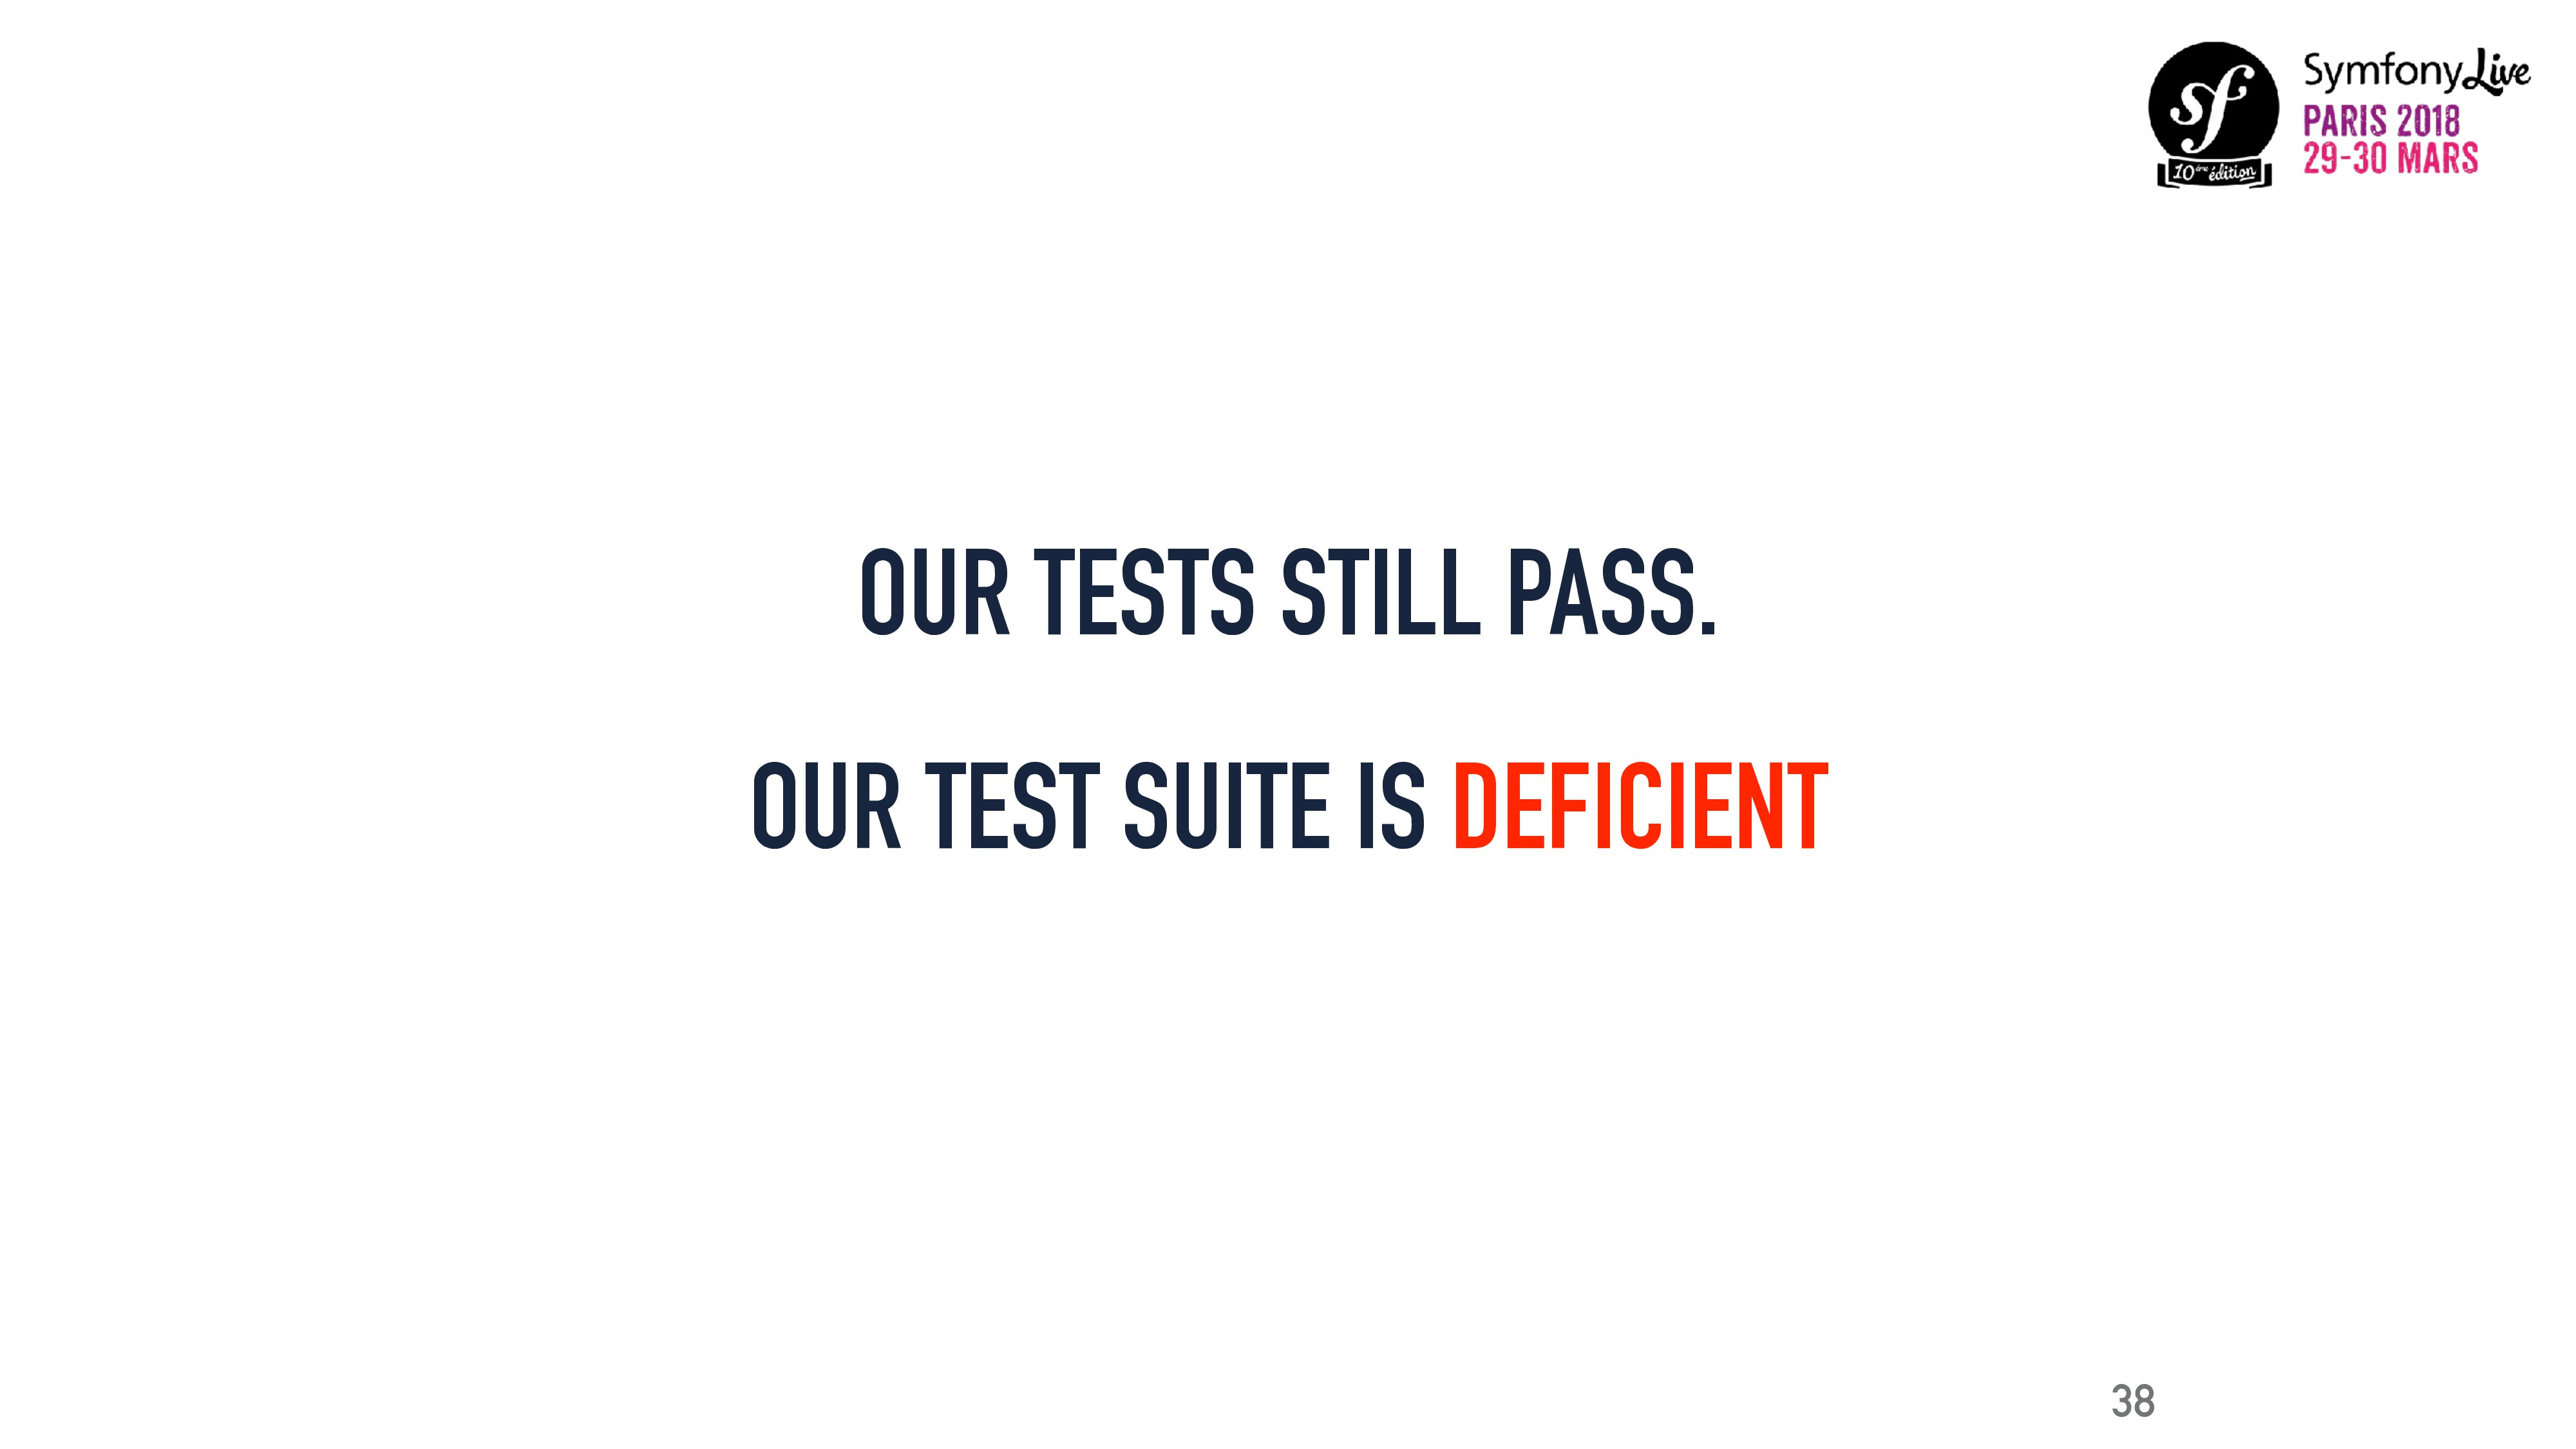 OUR TESTS STILL PASS. OUR TEST SUITE IS DEFICIE...